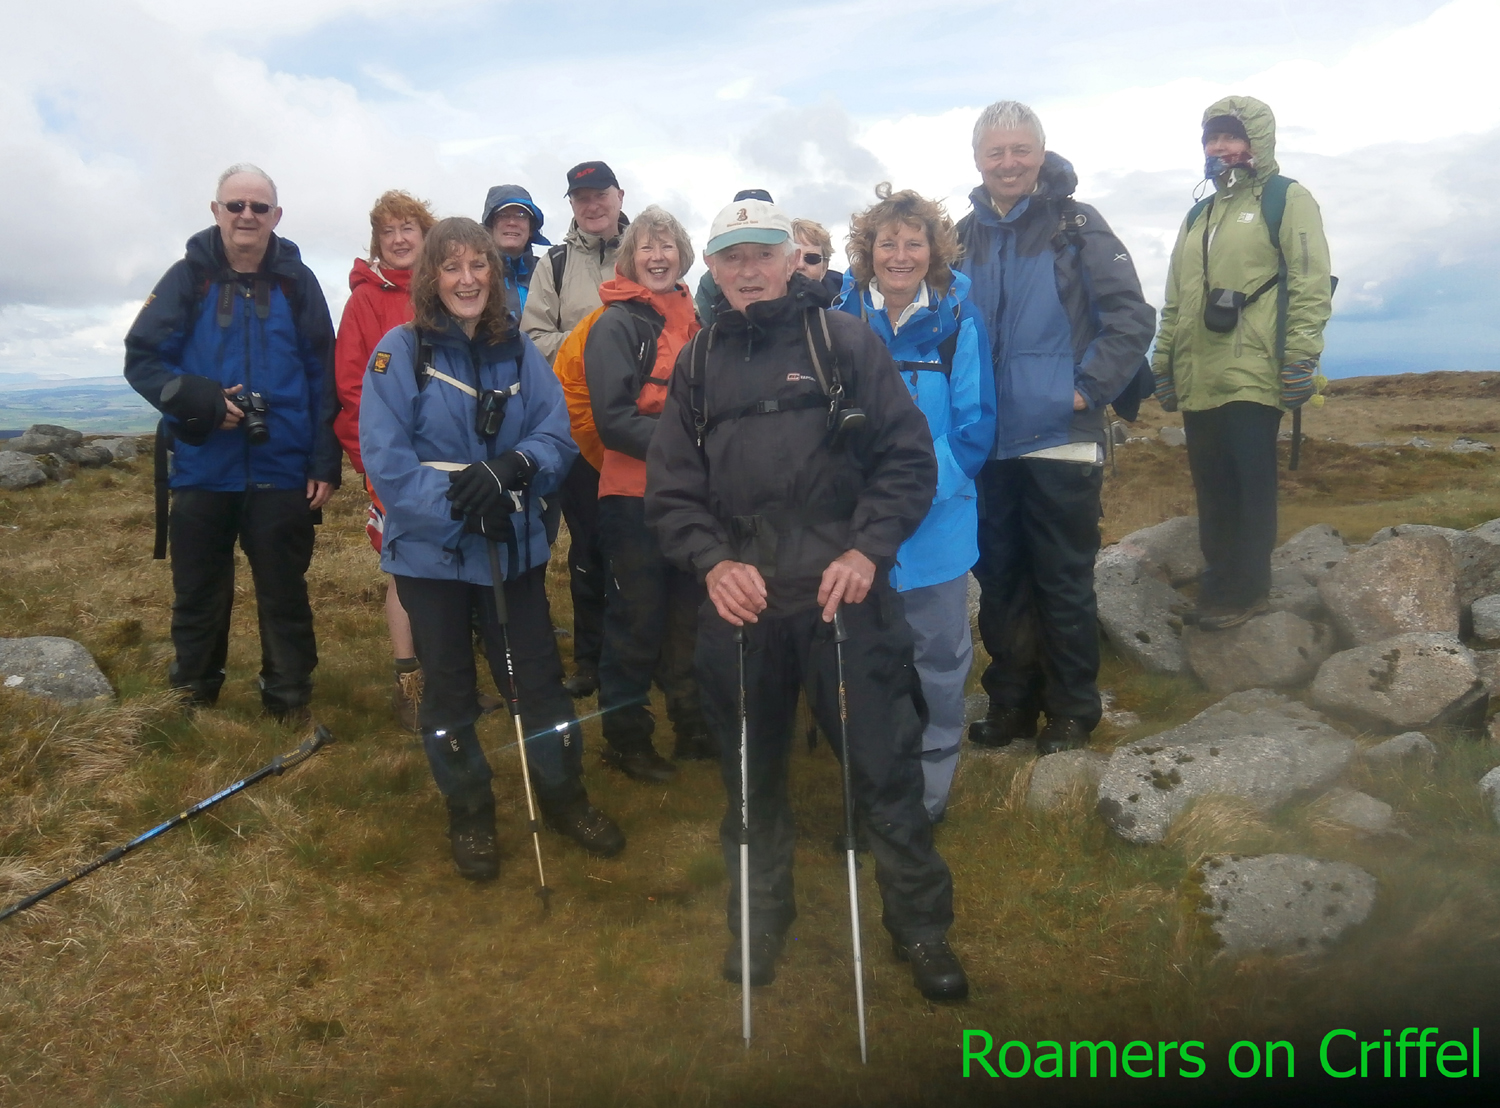 Roamers on Criffel pic